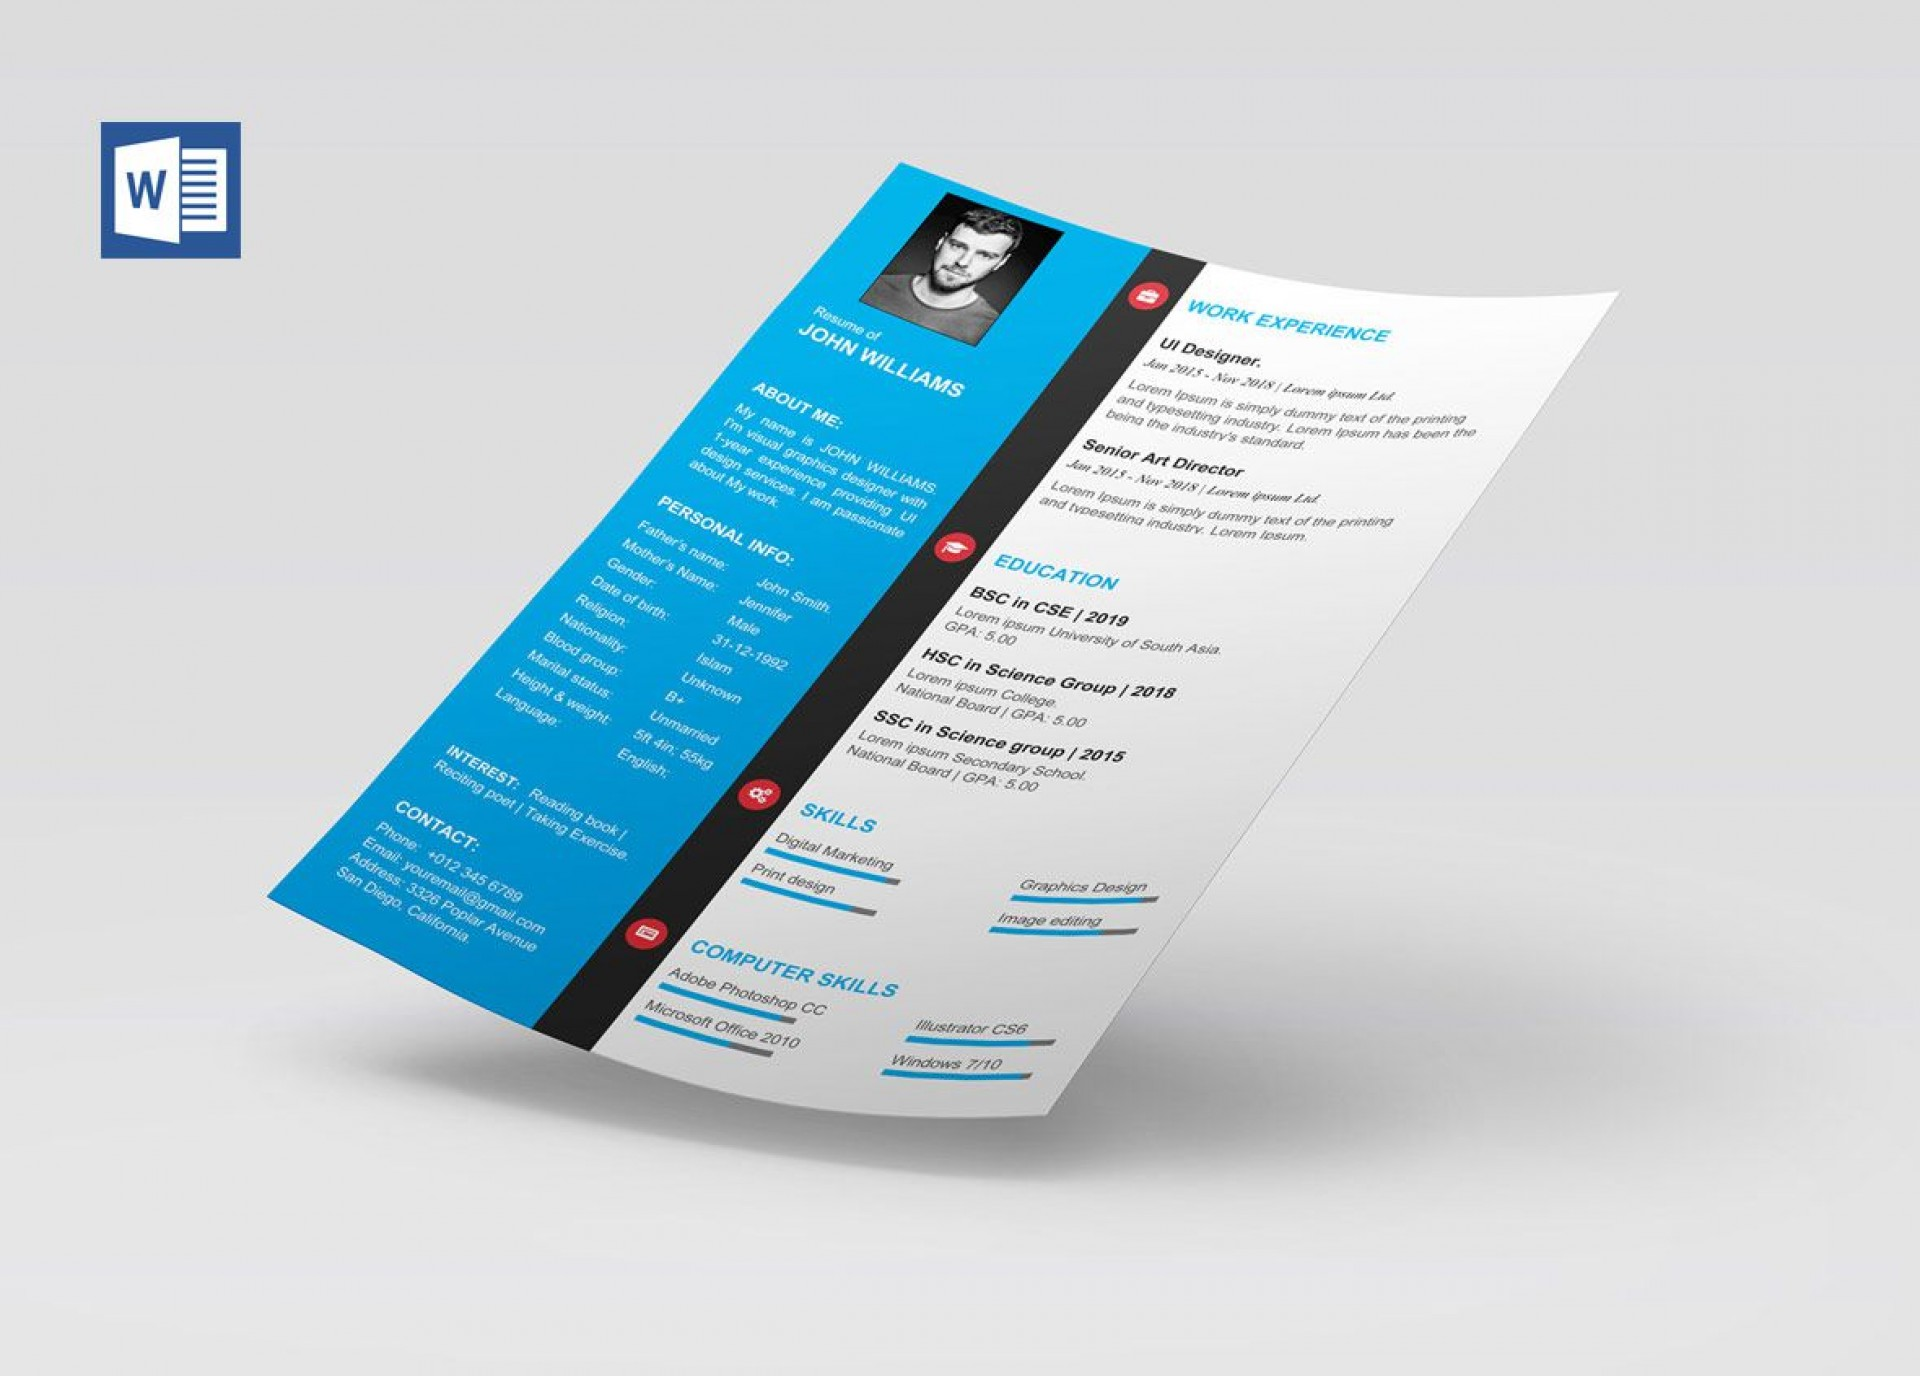 011 Formidable Word Template Free Download Image  Simple Cv 20191920